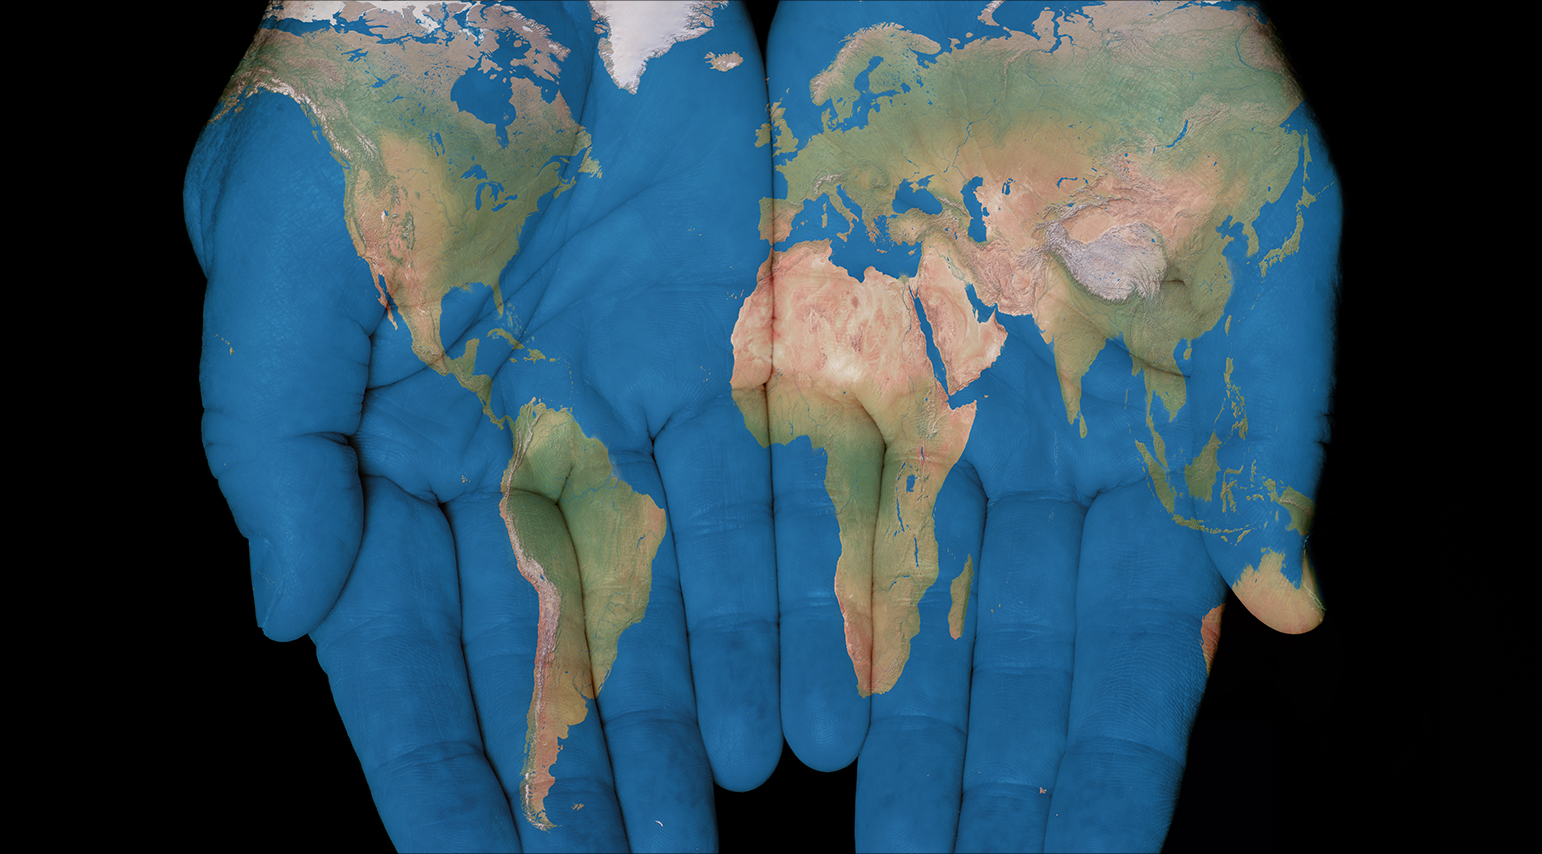 image of the map pf the world painted onto open hands